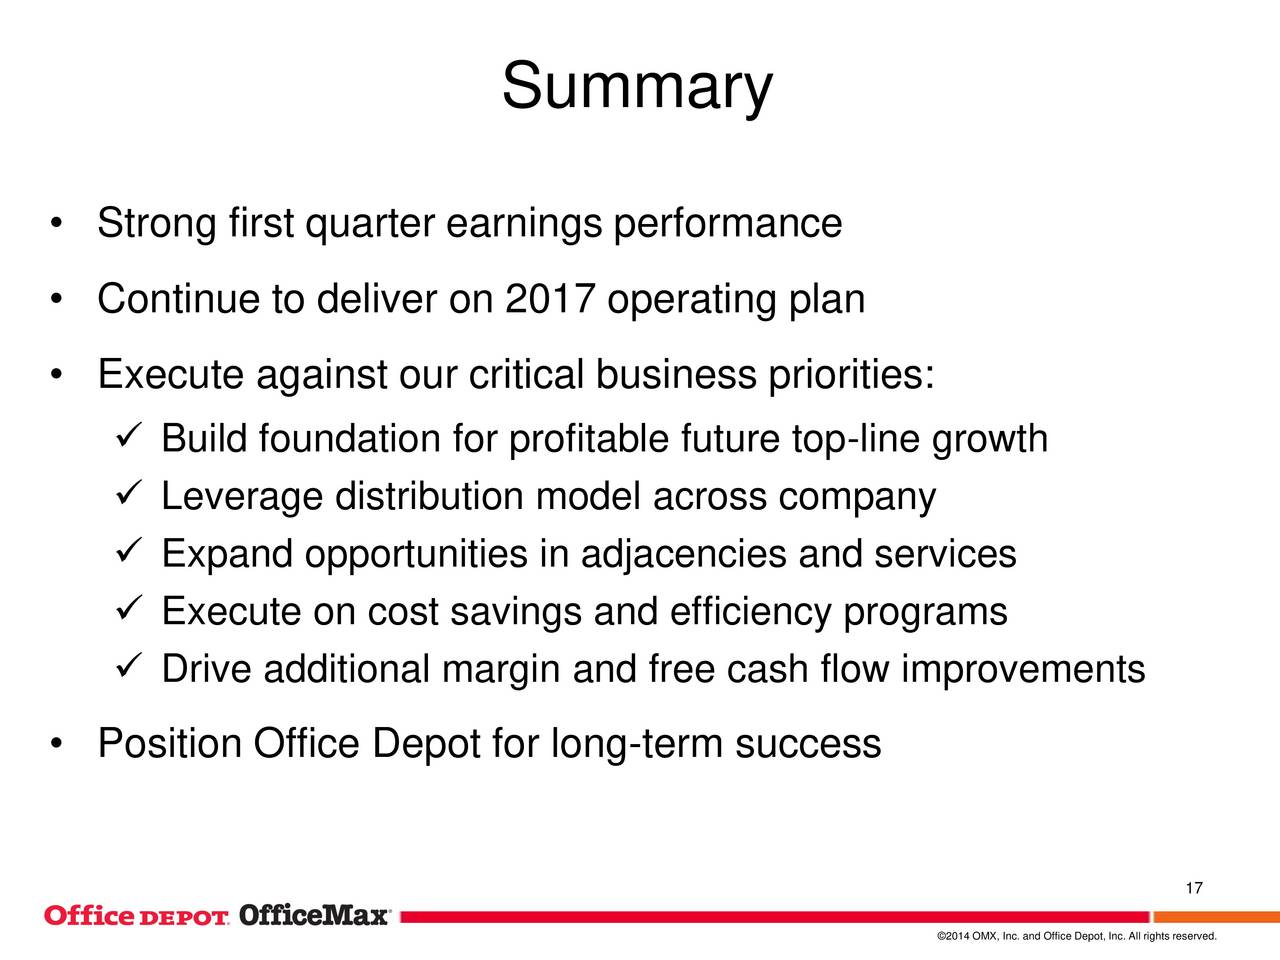 Office Depot Inc. 2017 Q1   Results   Earnings Call Slides   Office Depot  Inc. (NYSE:ODP) | Seeking Alpha